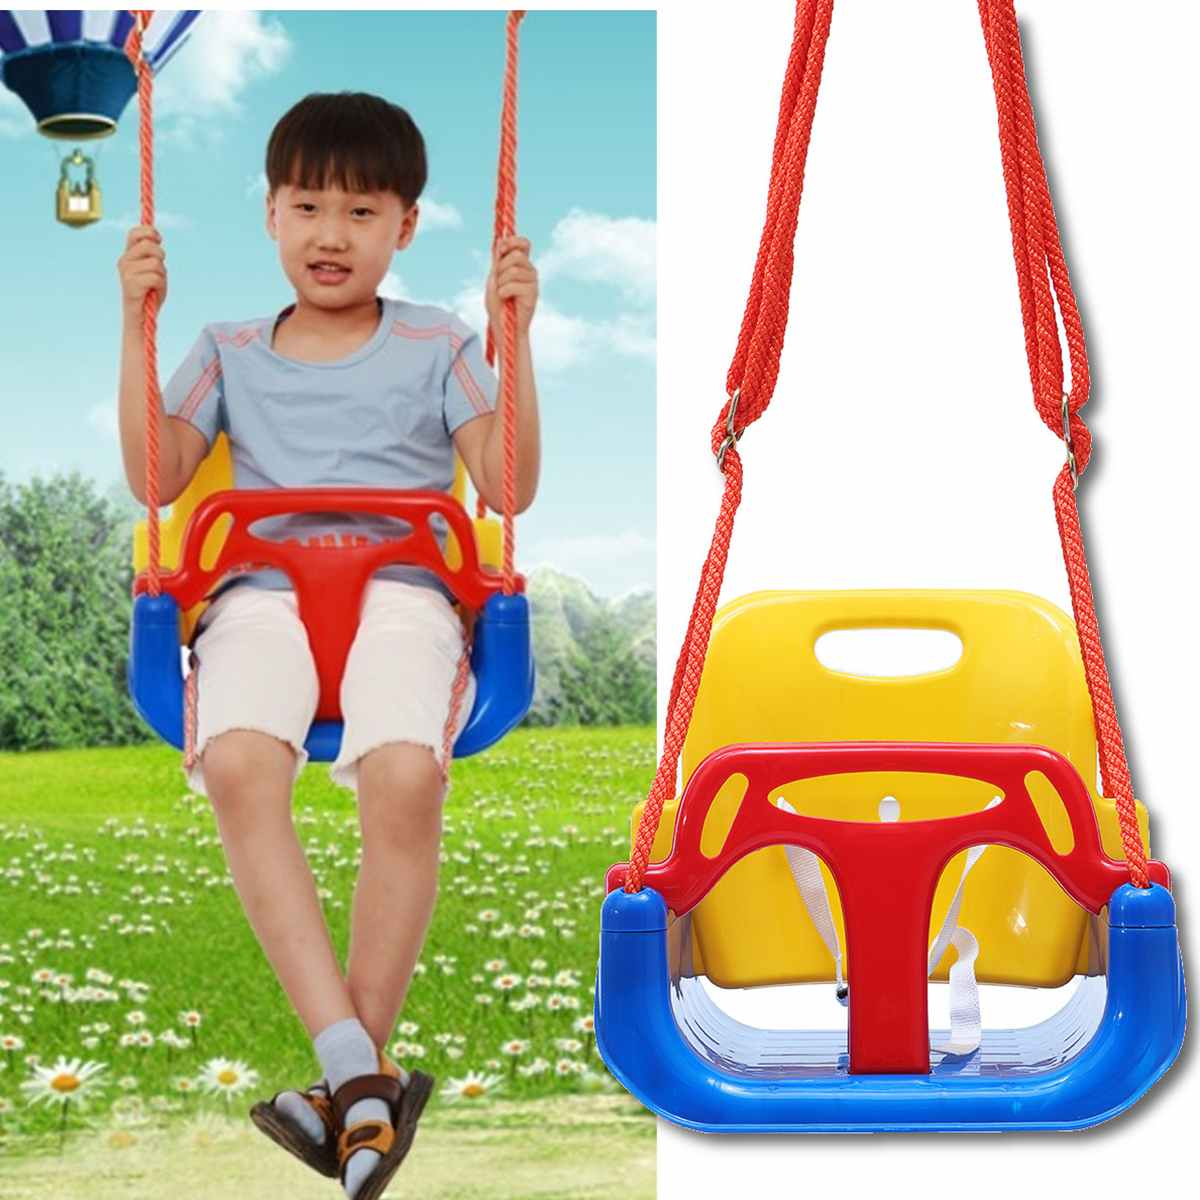 Adjustable Safe Bucket Baby Swing Seat With Seat Belt Kids Outdoor Yard Play Children's Swing Home Three-in-one Infant Baby Swin